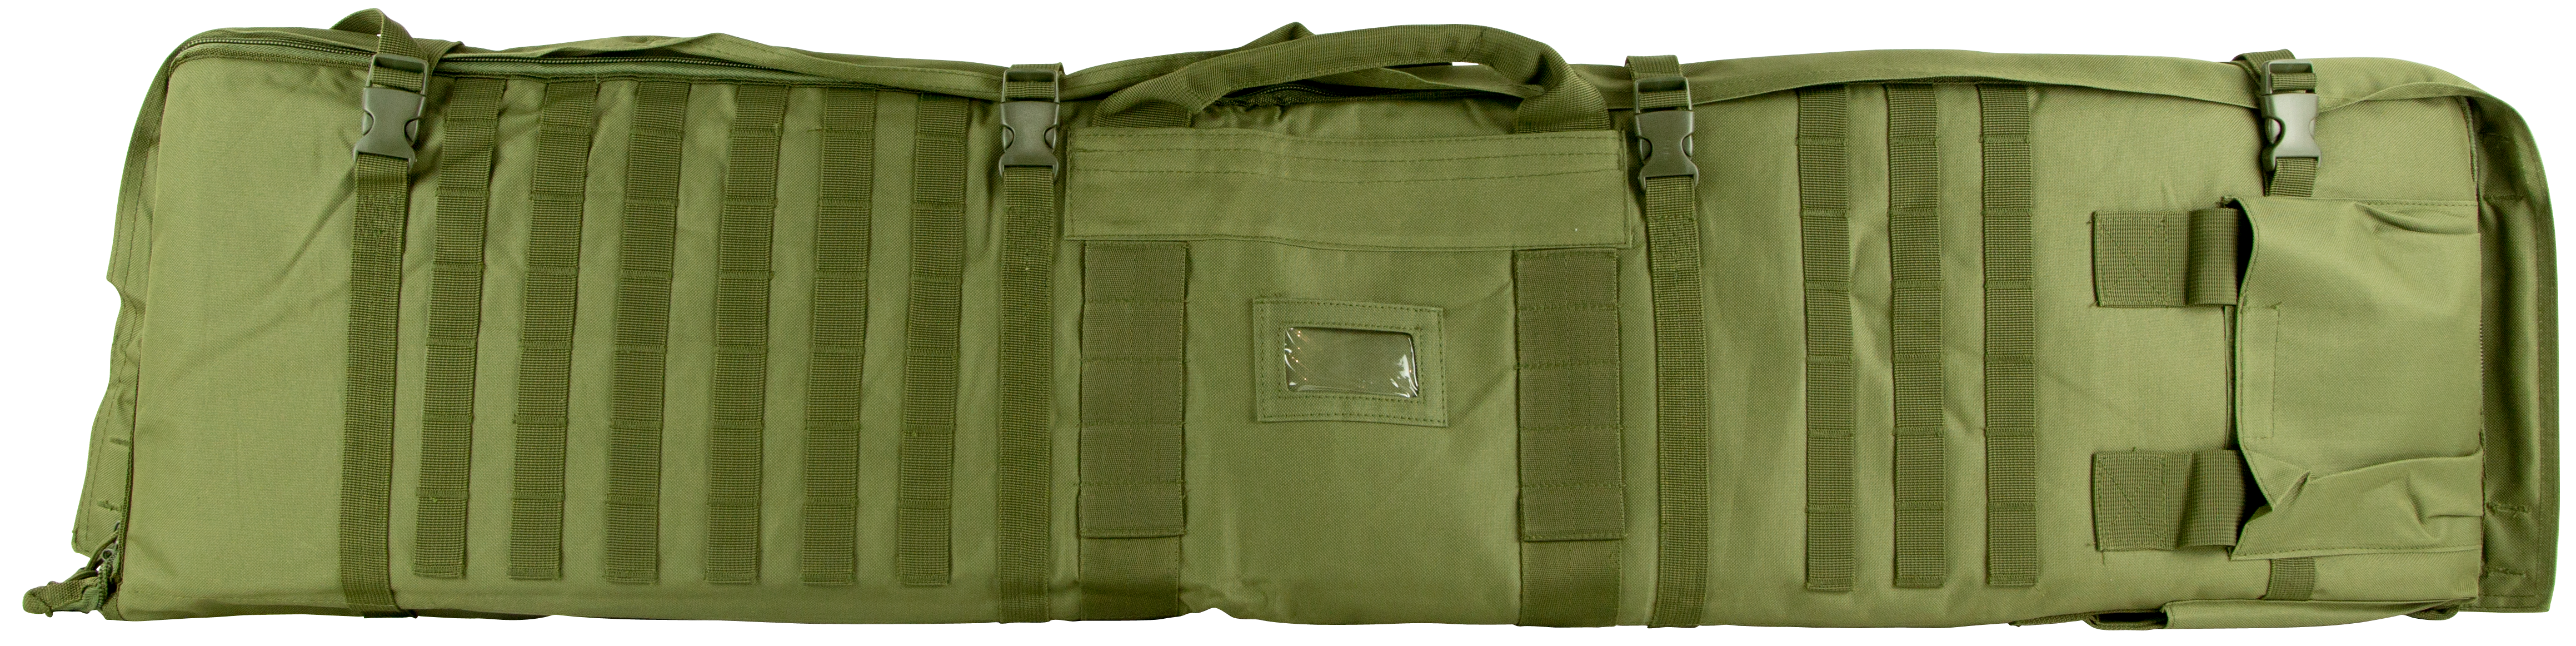 NCStar CTVL2913G Deluxe Rifle Case/Shooting Mat 48